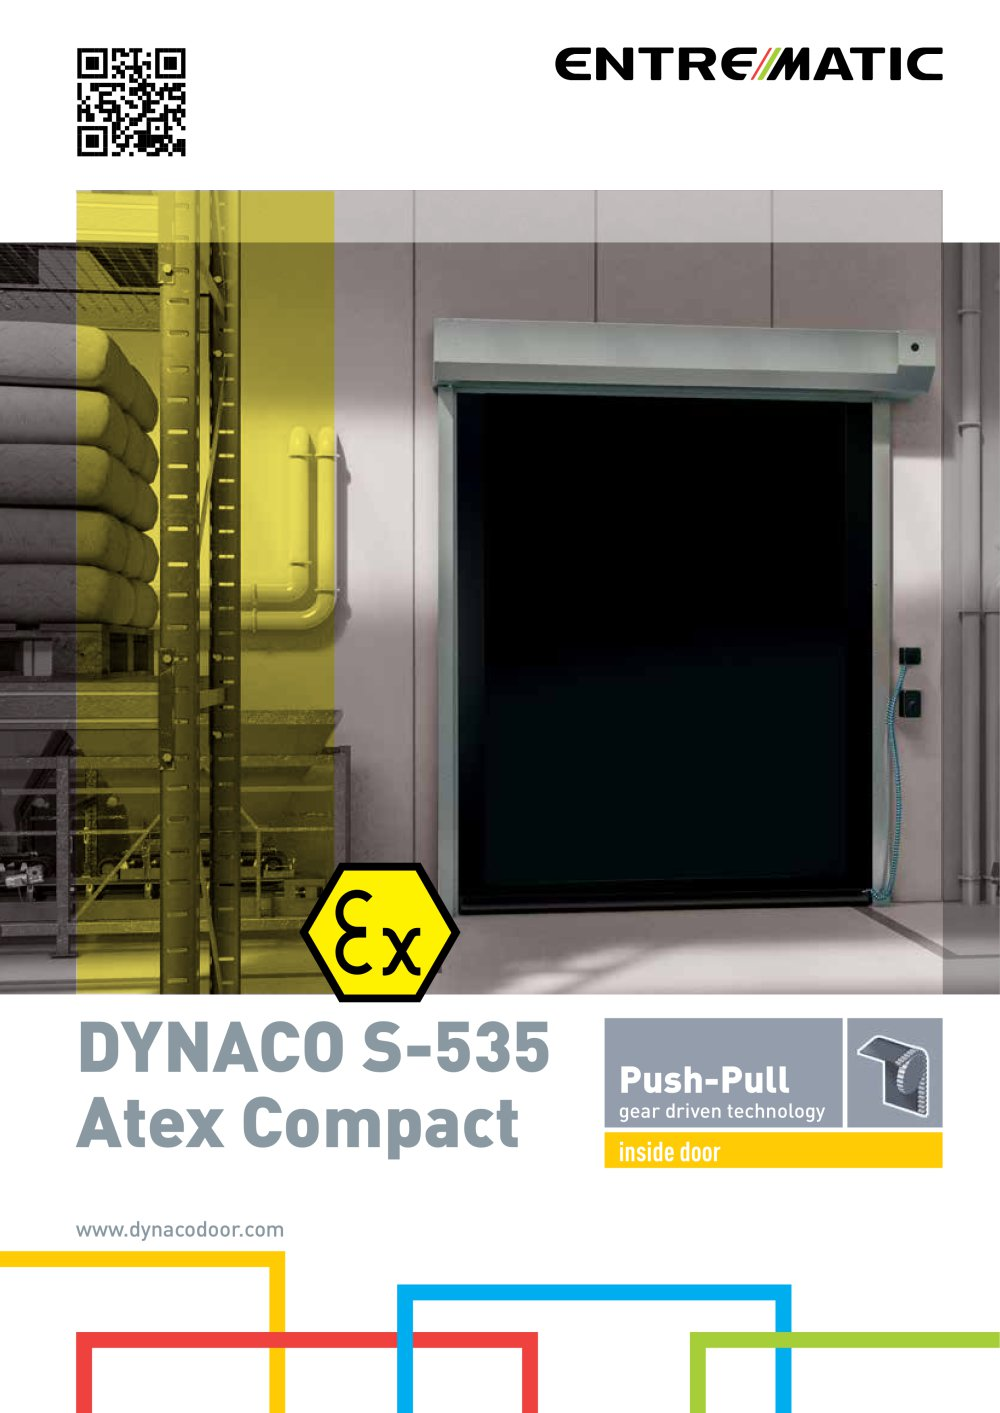 Dynaco S-535 Atex Compact - 4 Pages  sc 1 st  Catalogues Directindustry & Dynaco S-535 Atex Compact - Entrematic - PDF Catalogue | Technical ...